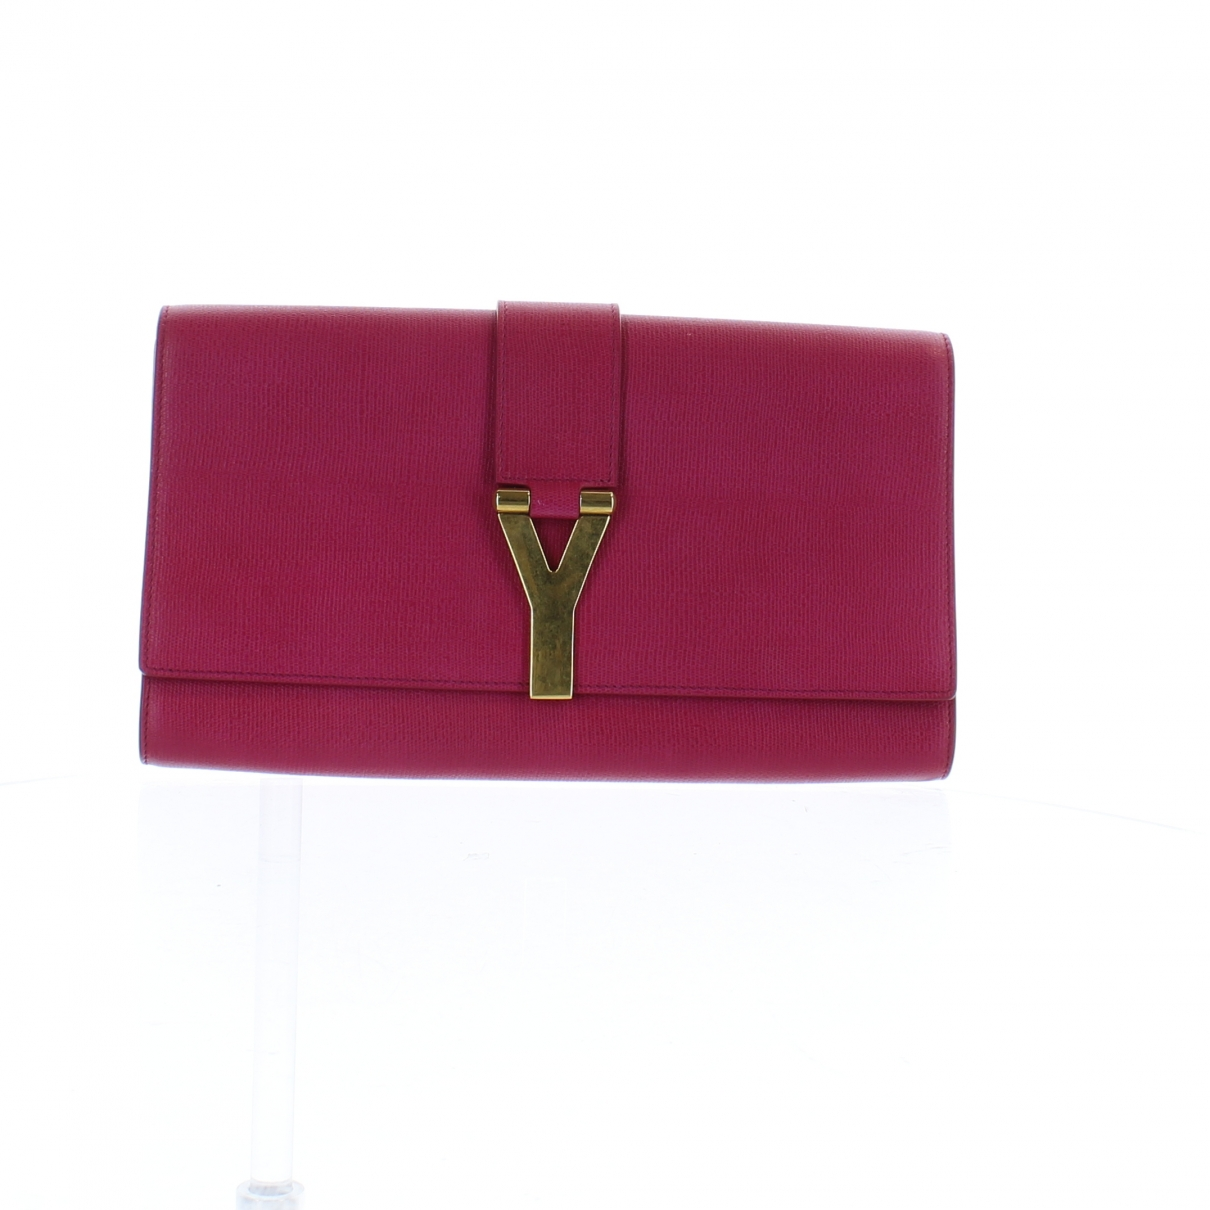 Yves Saint Laurent Chyc Clutch in  Rosa Leder